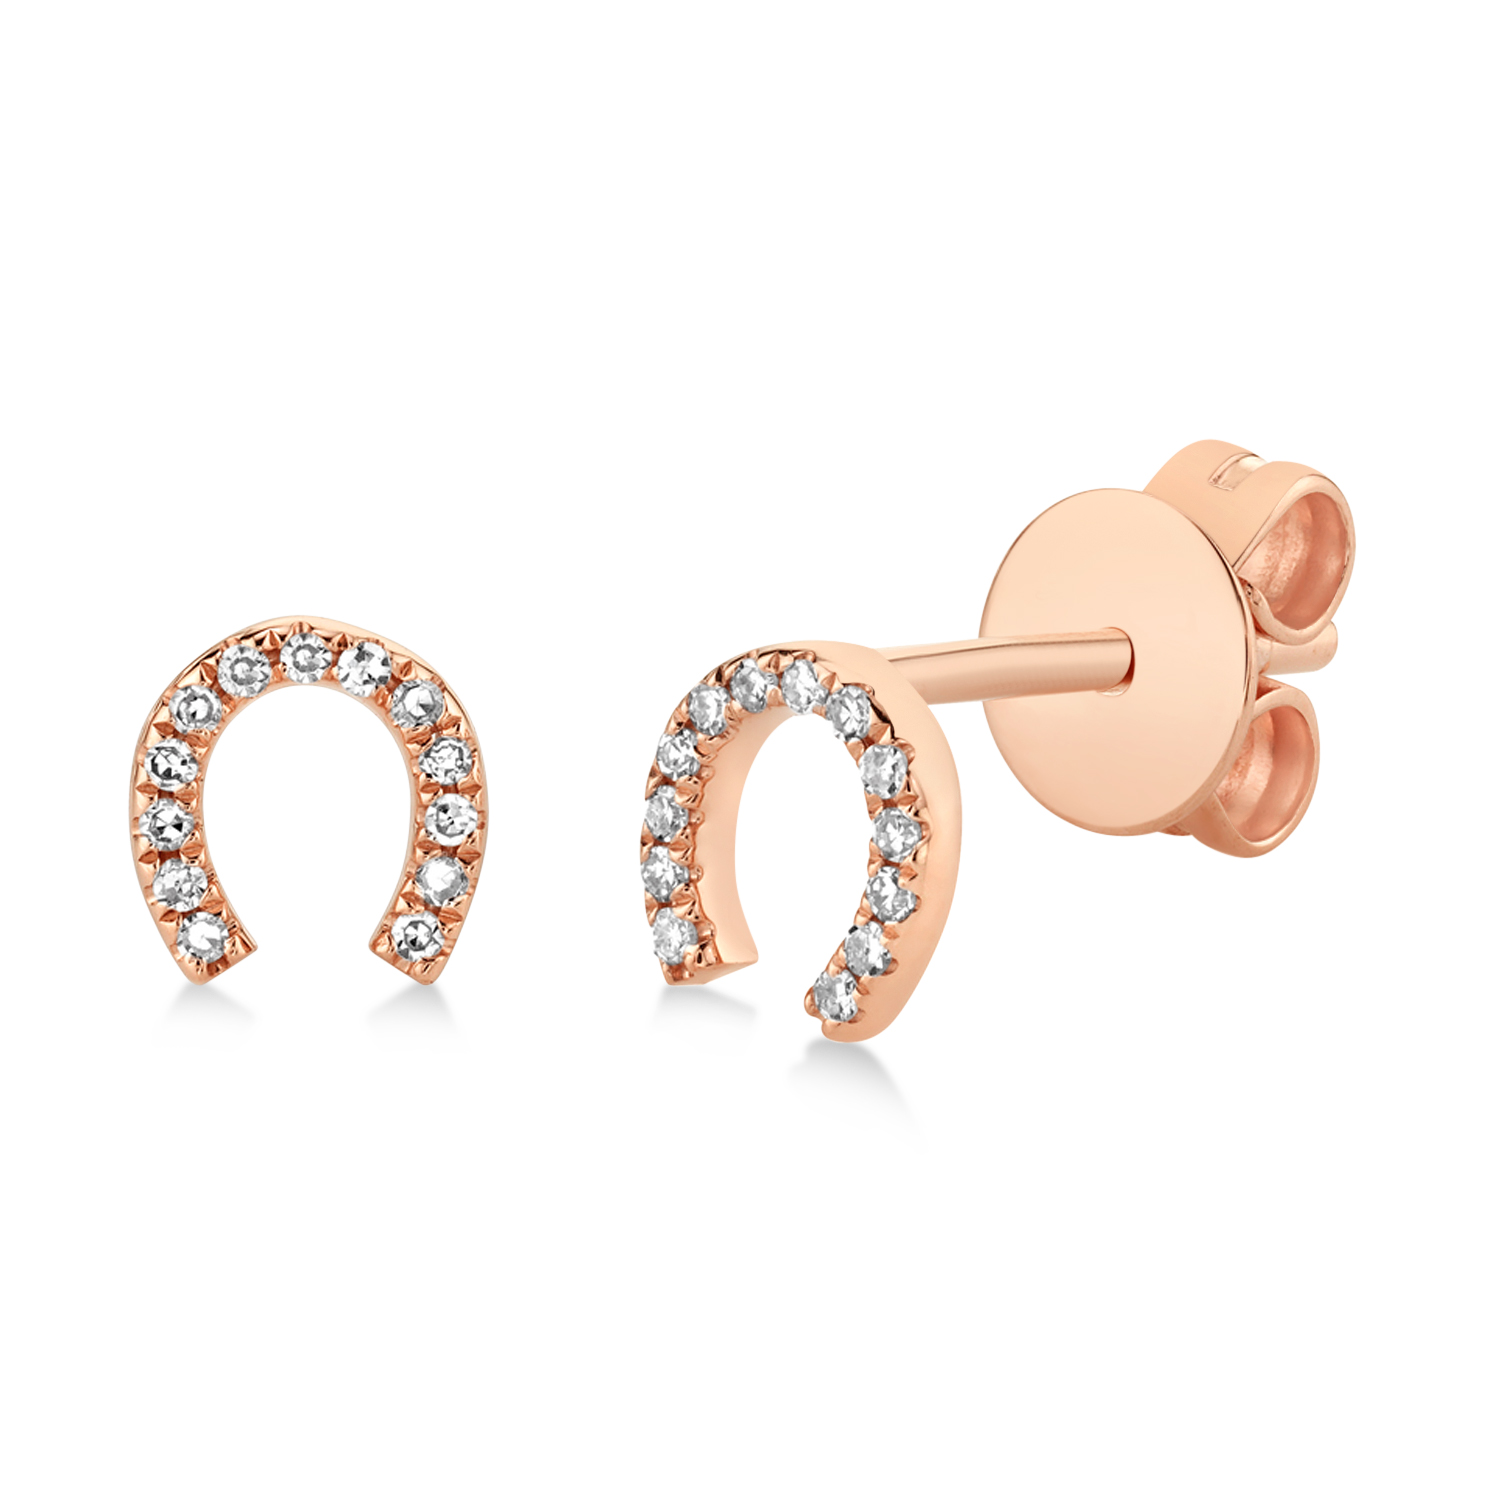 0.06ct 14k Rose Gold Diamond Horseshoe Earrings